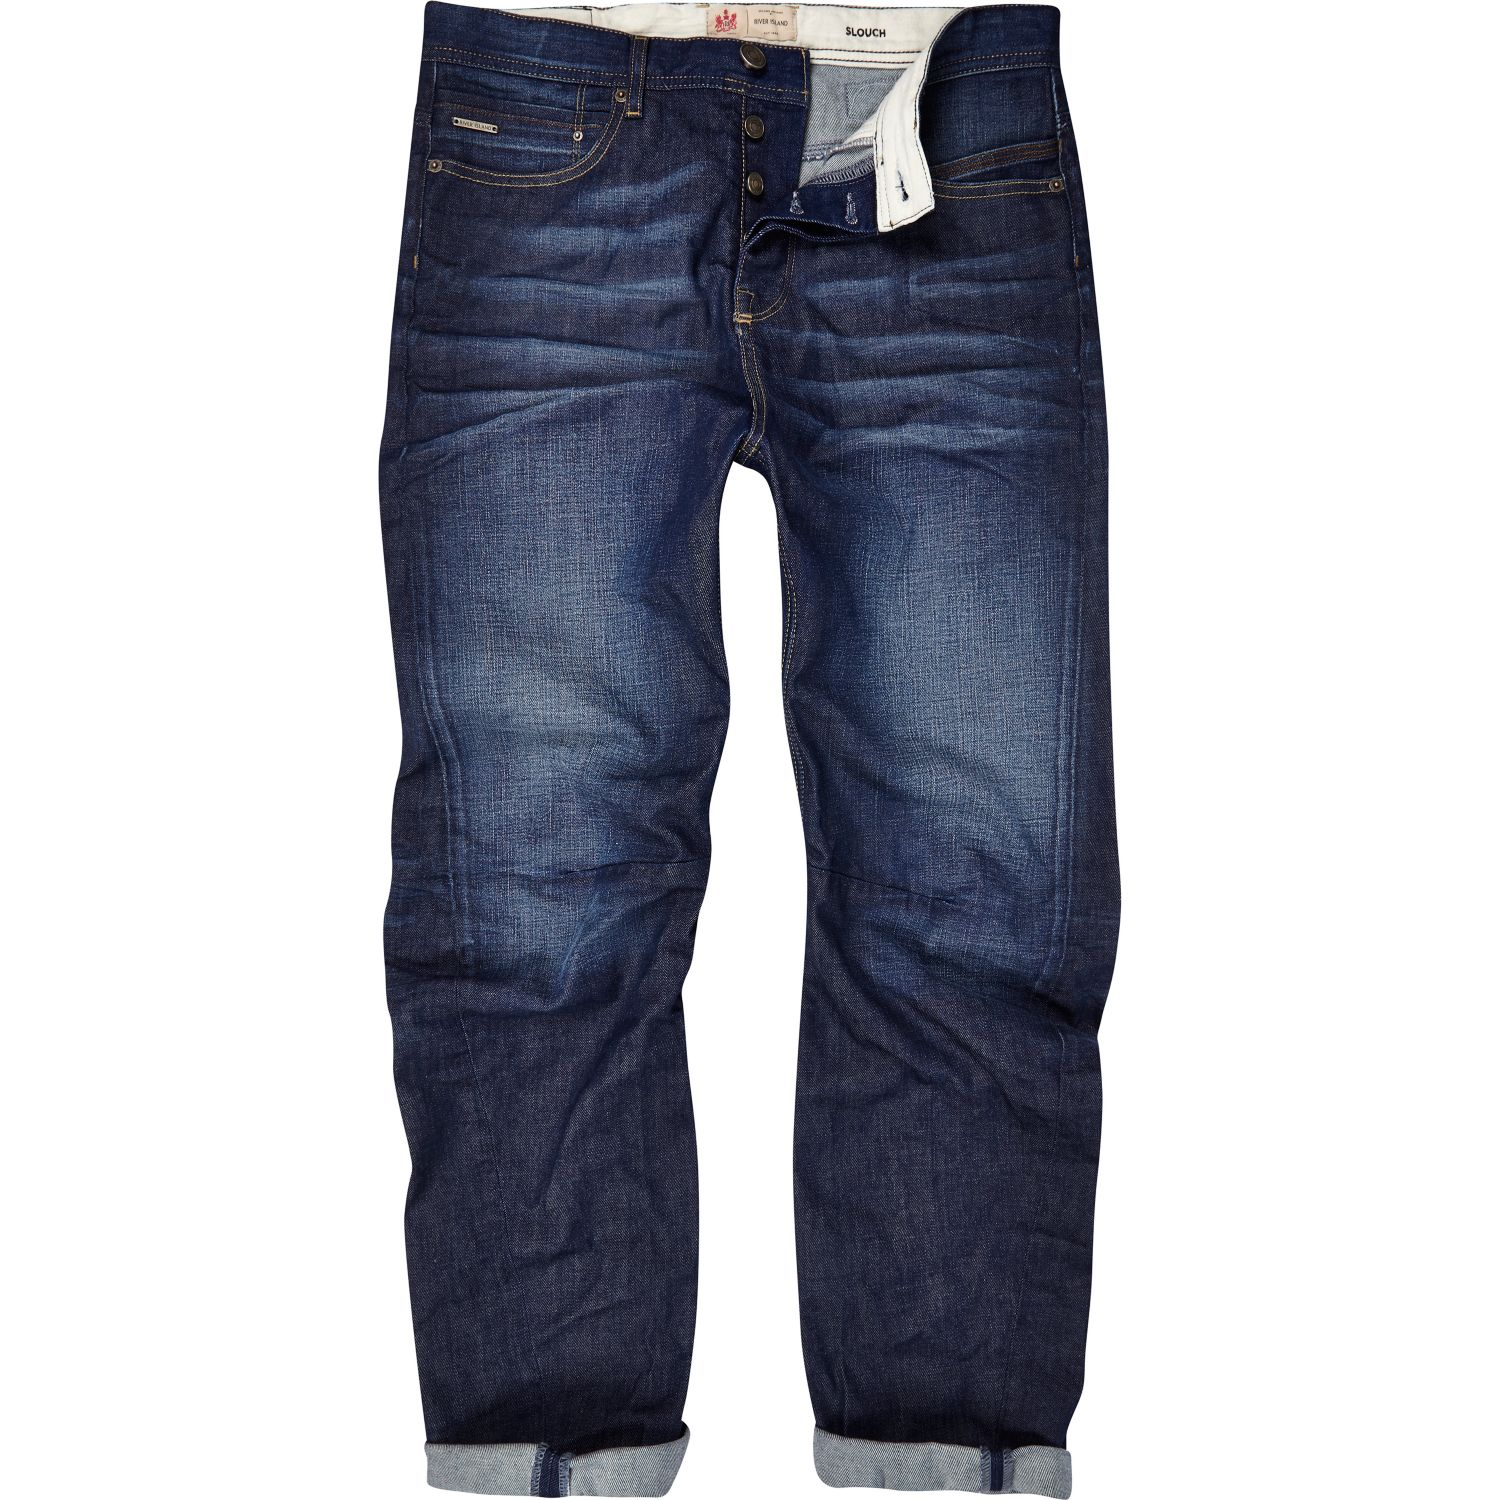 Find mens slouch jeans at ShopStyle. Shop the latest collection of mens slouch jeans from the most popular stores - all in one place.